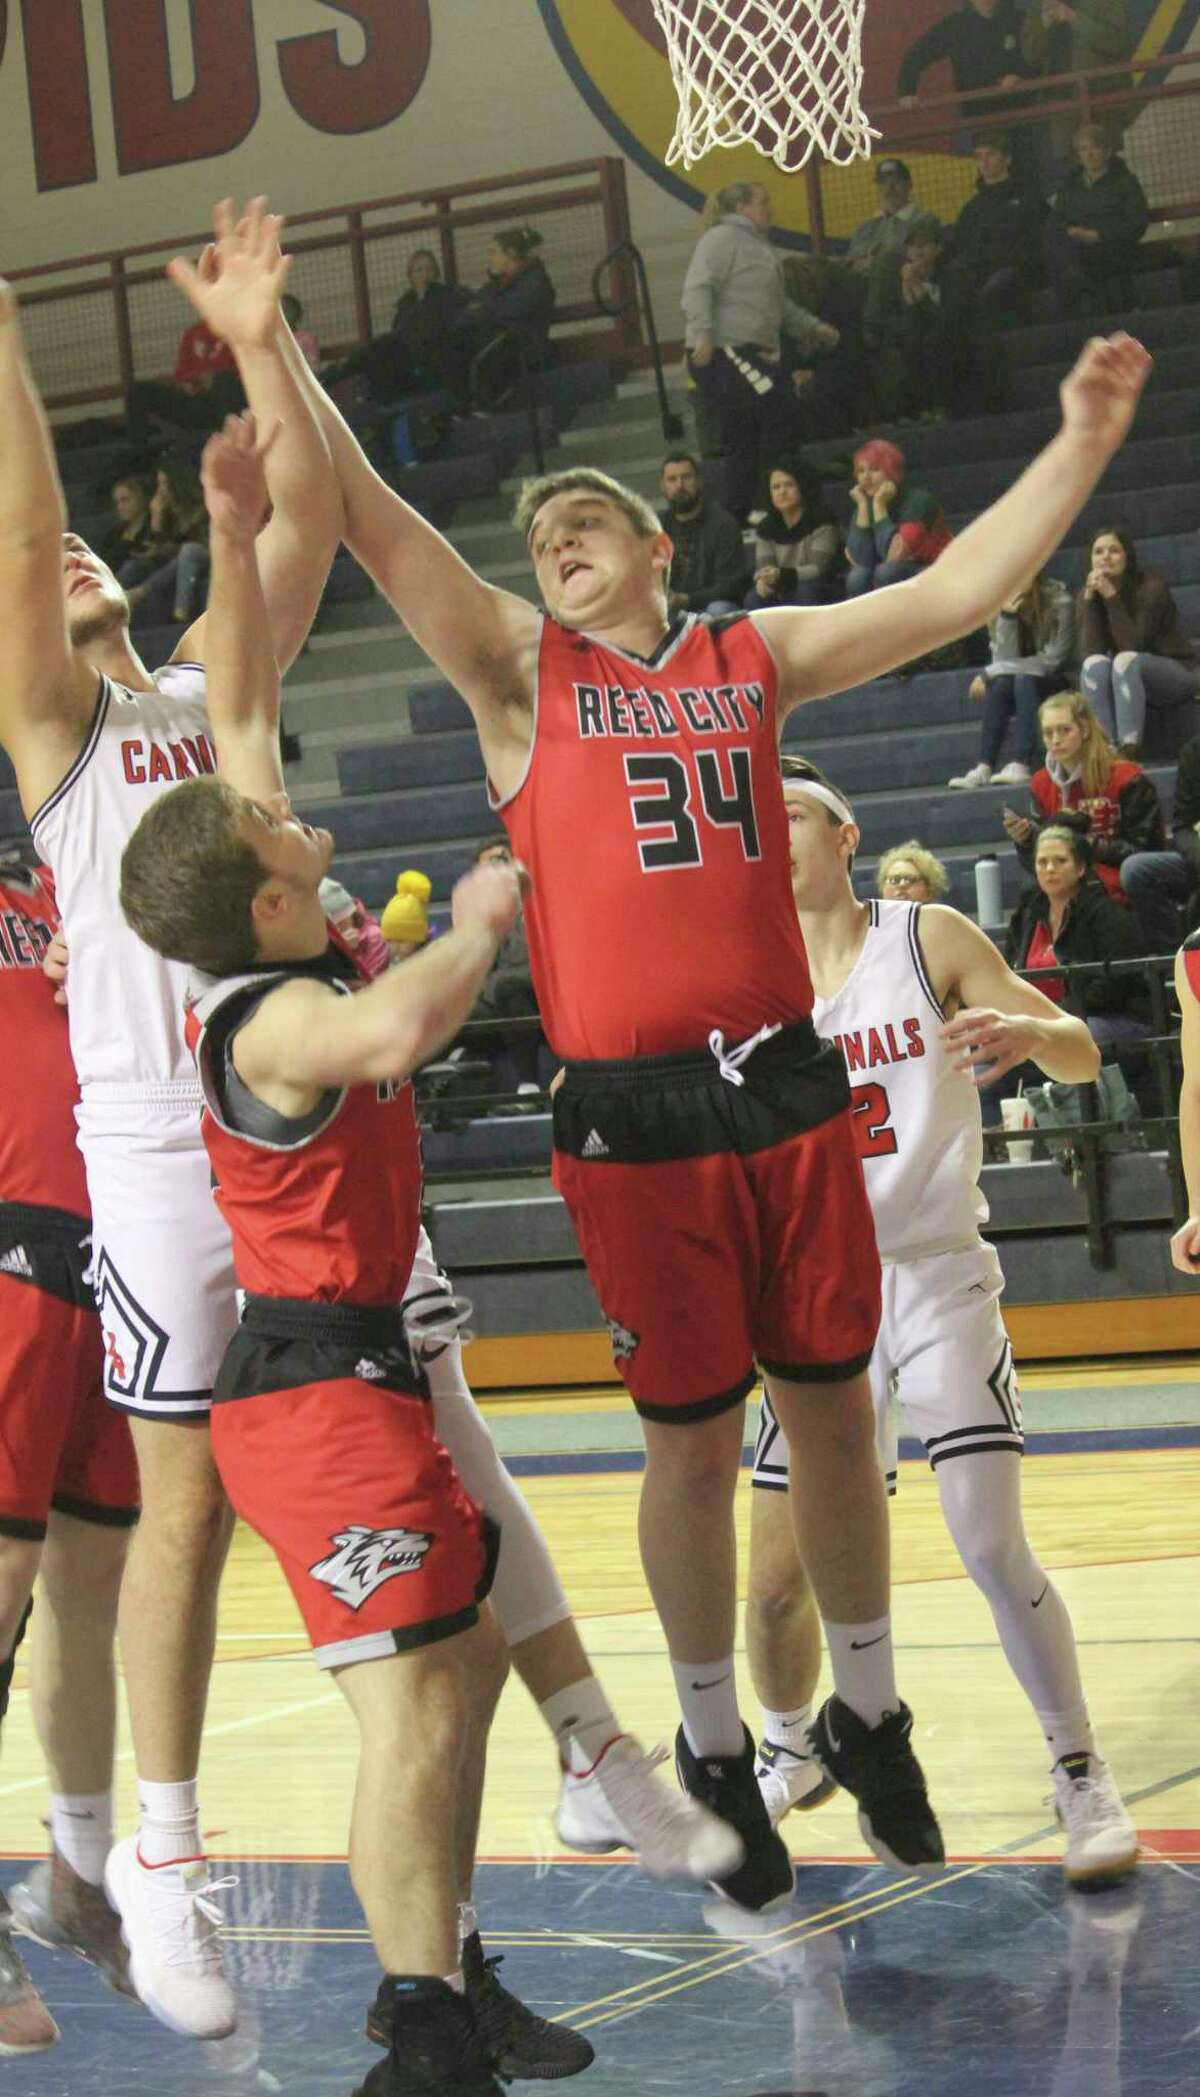 Canyon Reed is among Reed City's players in the summer campprogram. (Pioneer file photo)